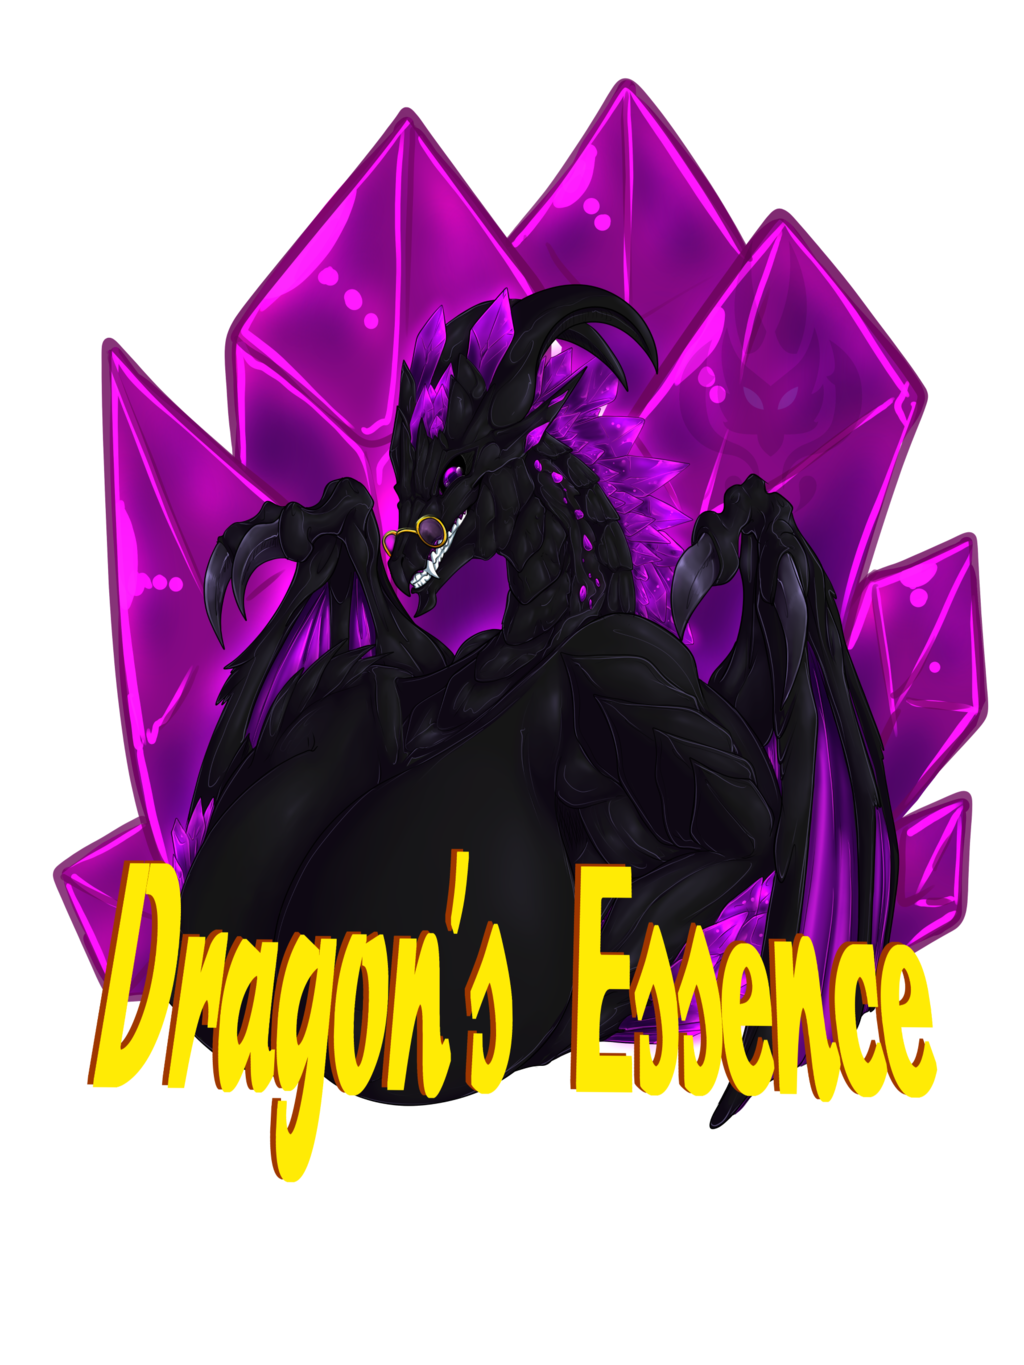 Dragon's Essence